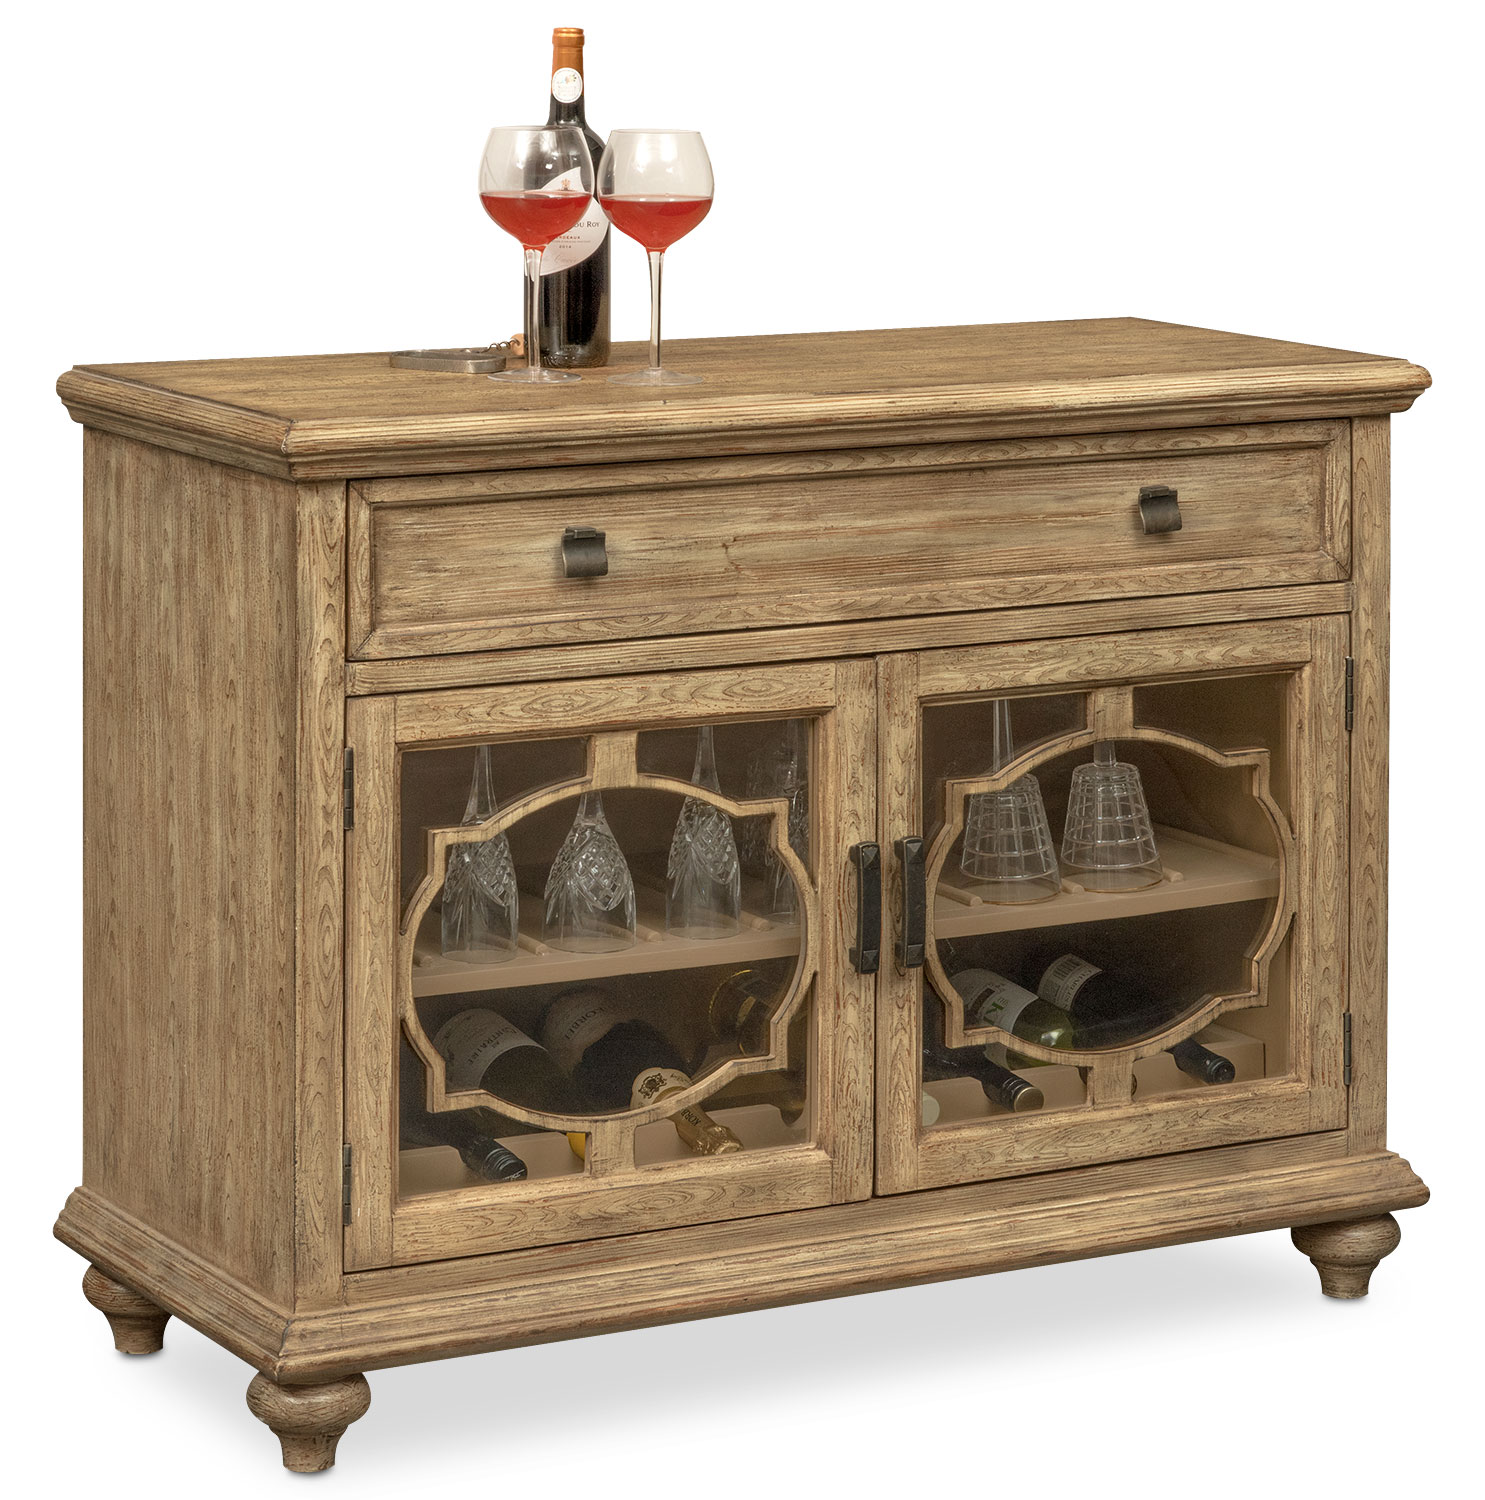 Mayfair Wine Cabinet - Natural